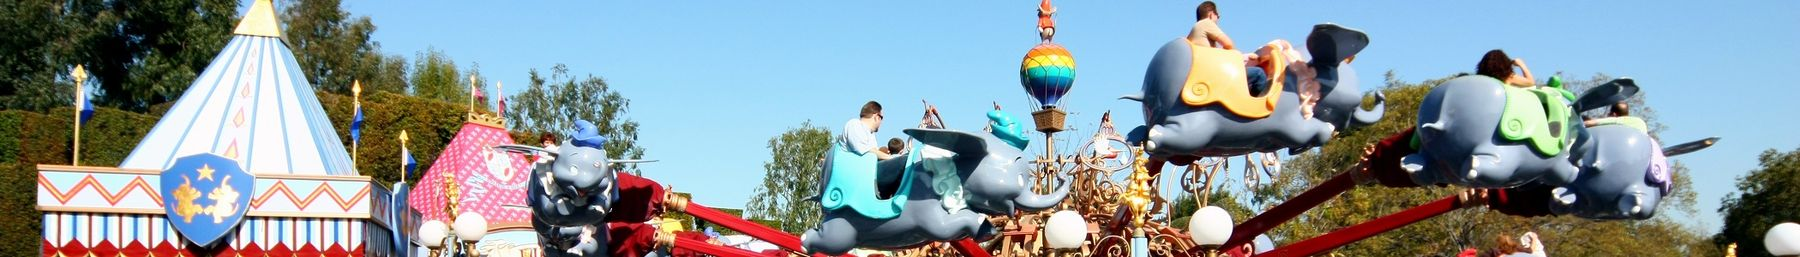 The Dumbo ride